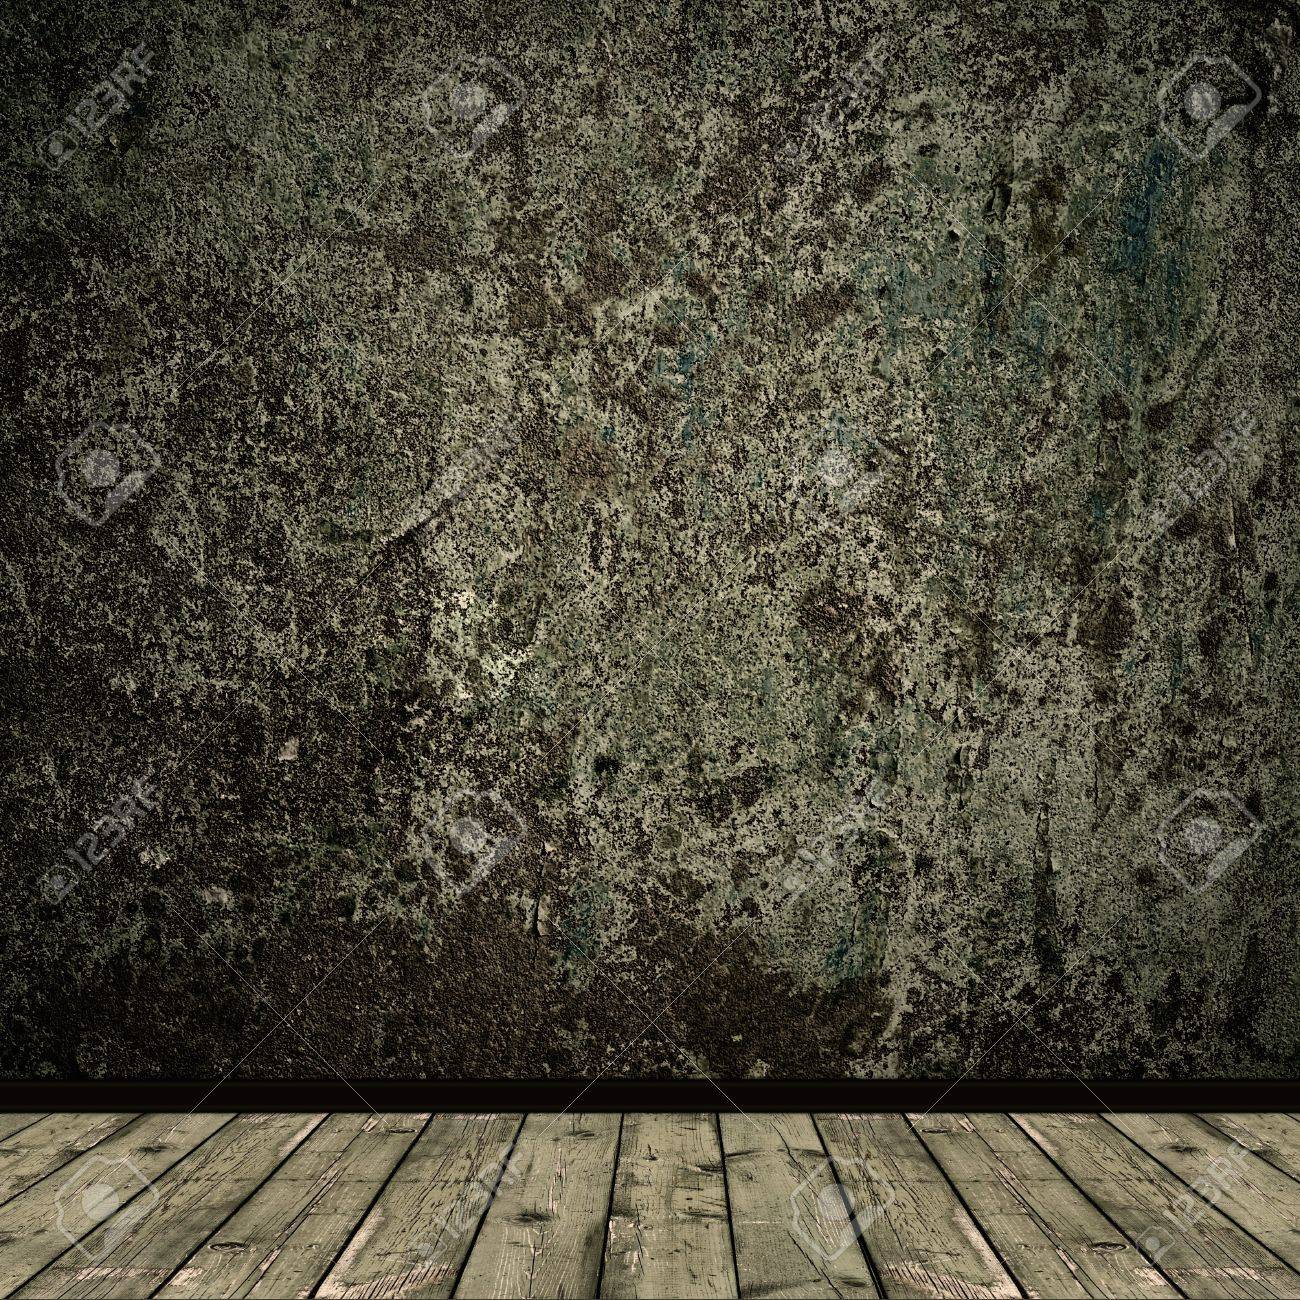 grunge floor and wall in old room Stock Photo - 6872644